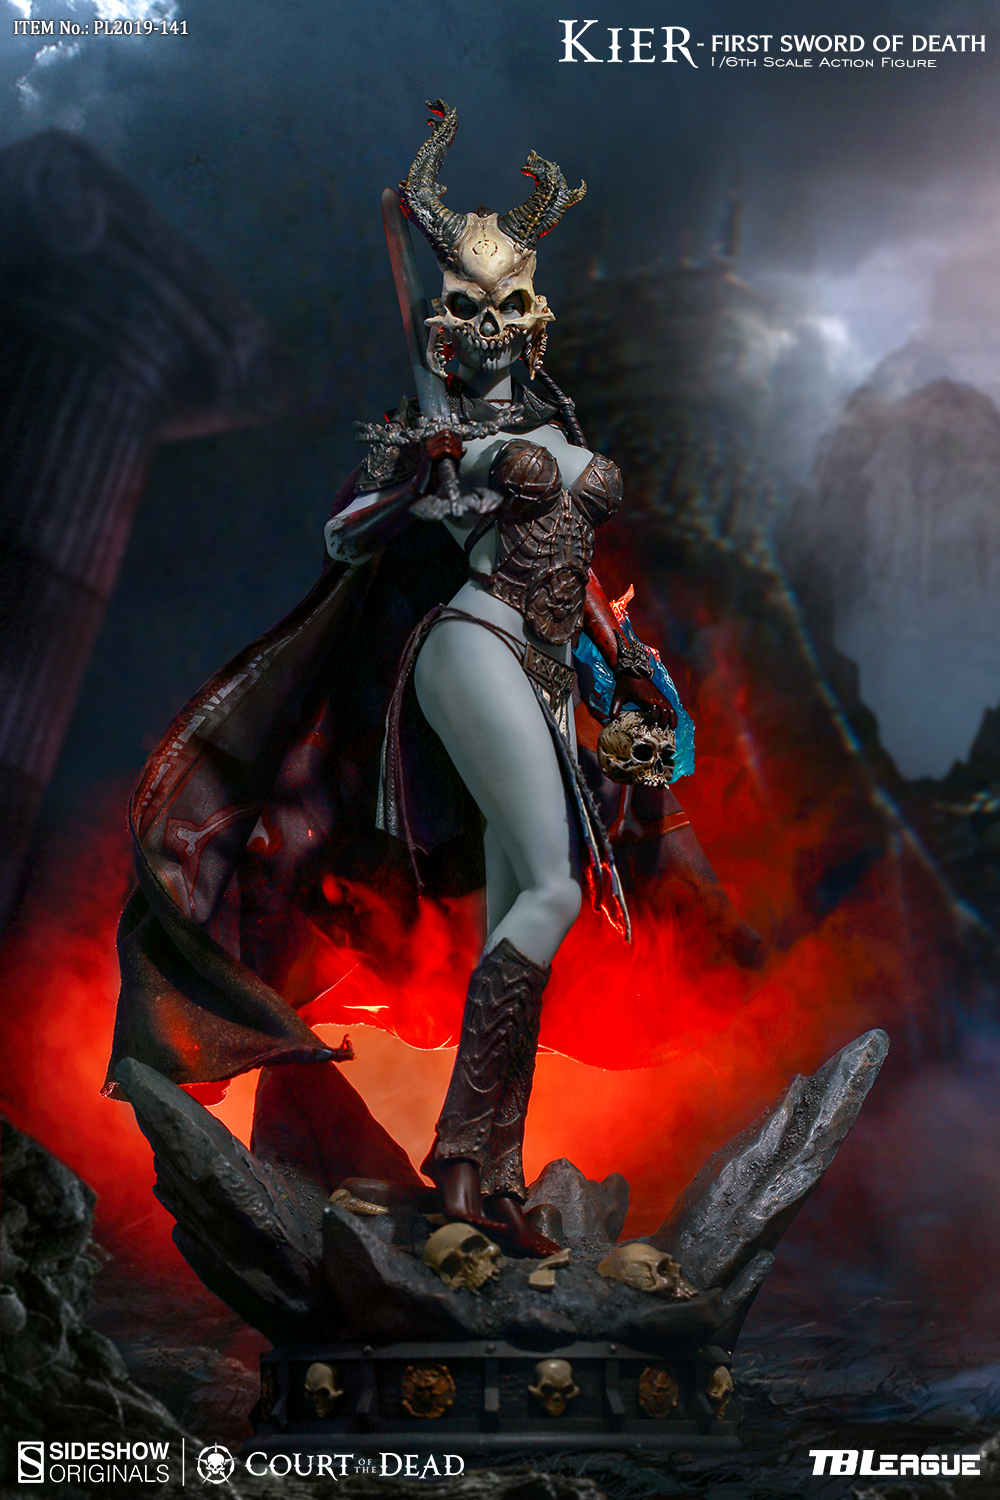 tbleague - NEW PRODUCT: TBLeague & Sideshow: 1/6 Court of the Dead - Valkyrie Cole / Kier movable doll (PL2019-141) 16260510